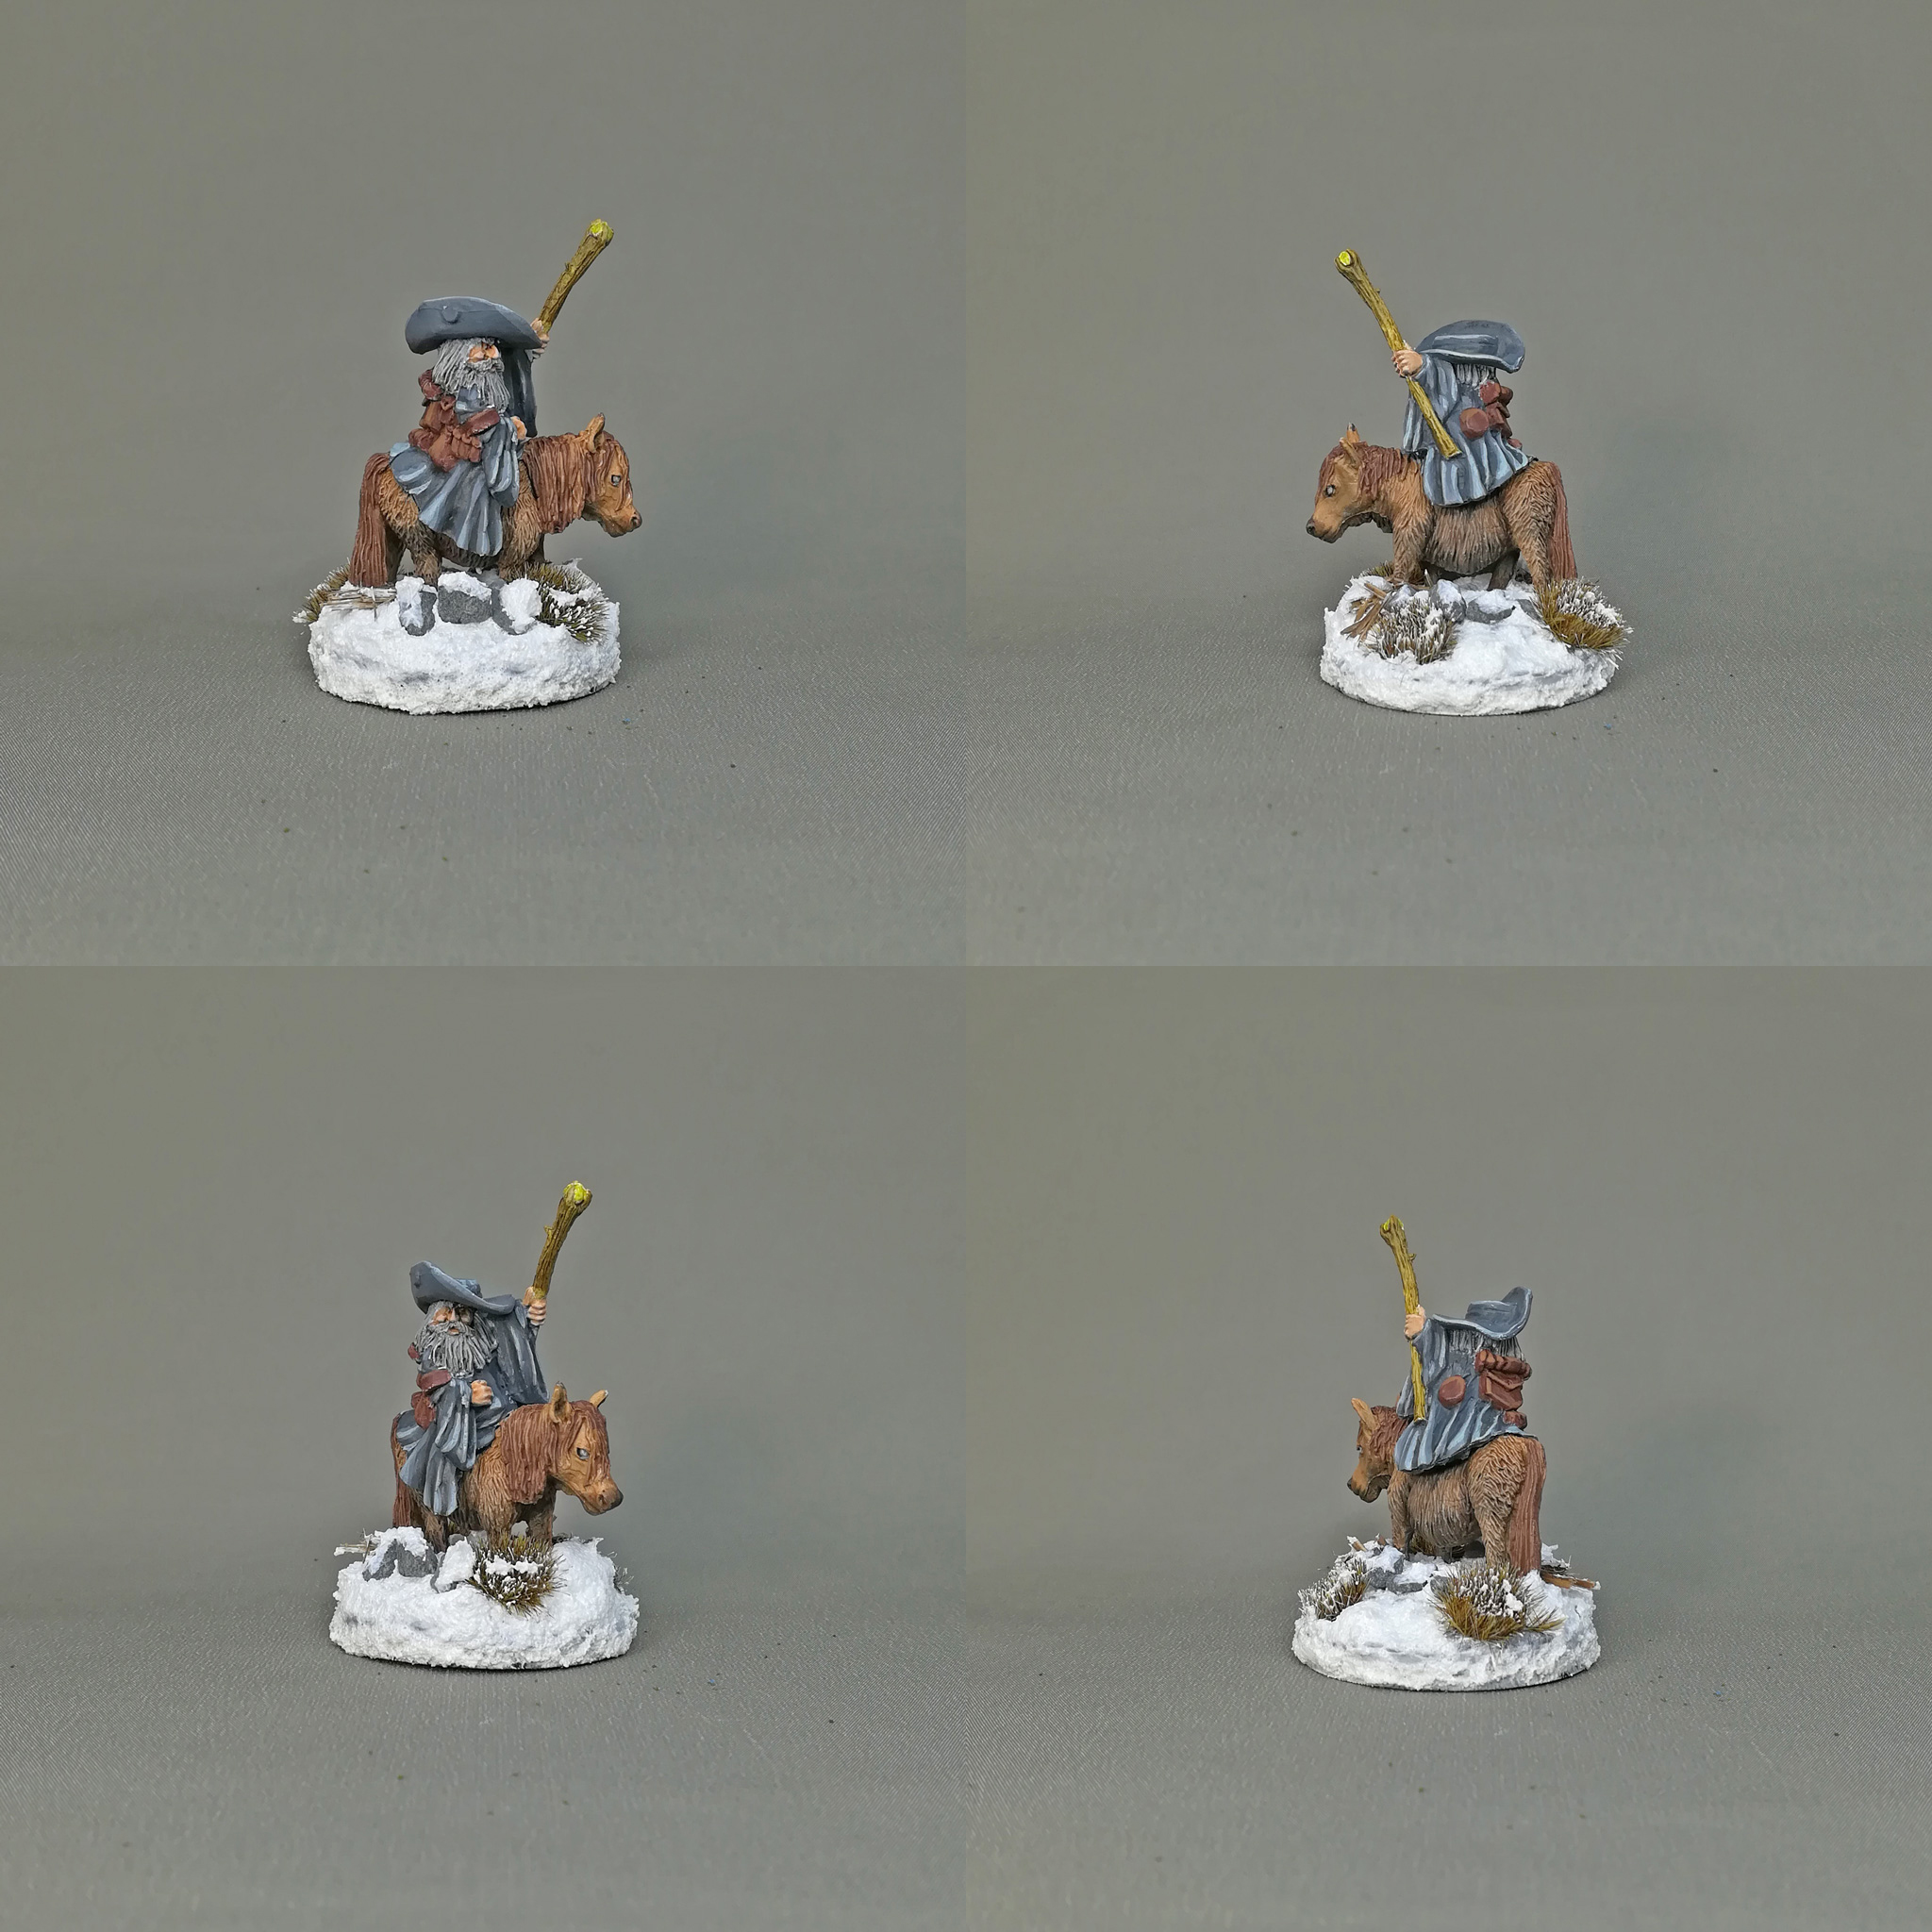 Dwarf Battle Mage and Poney